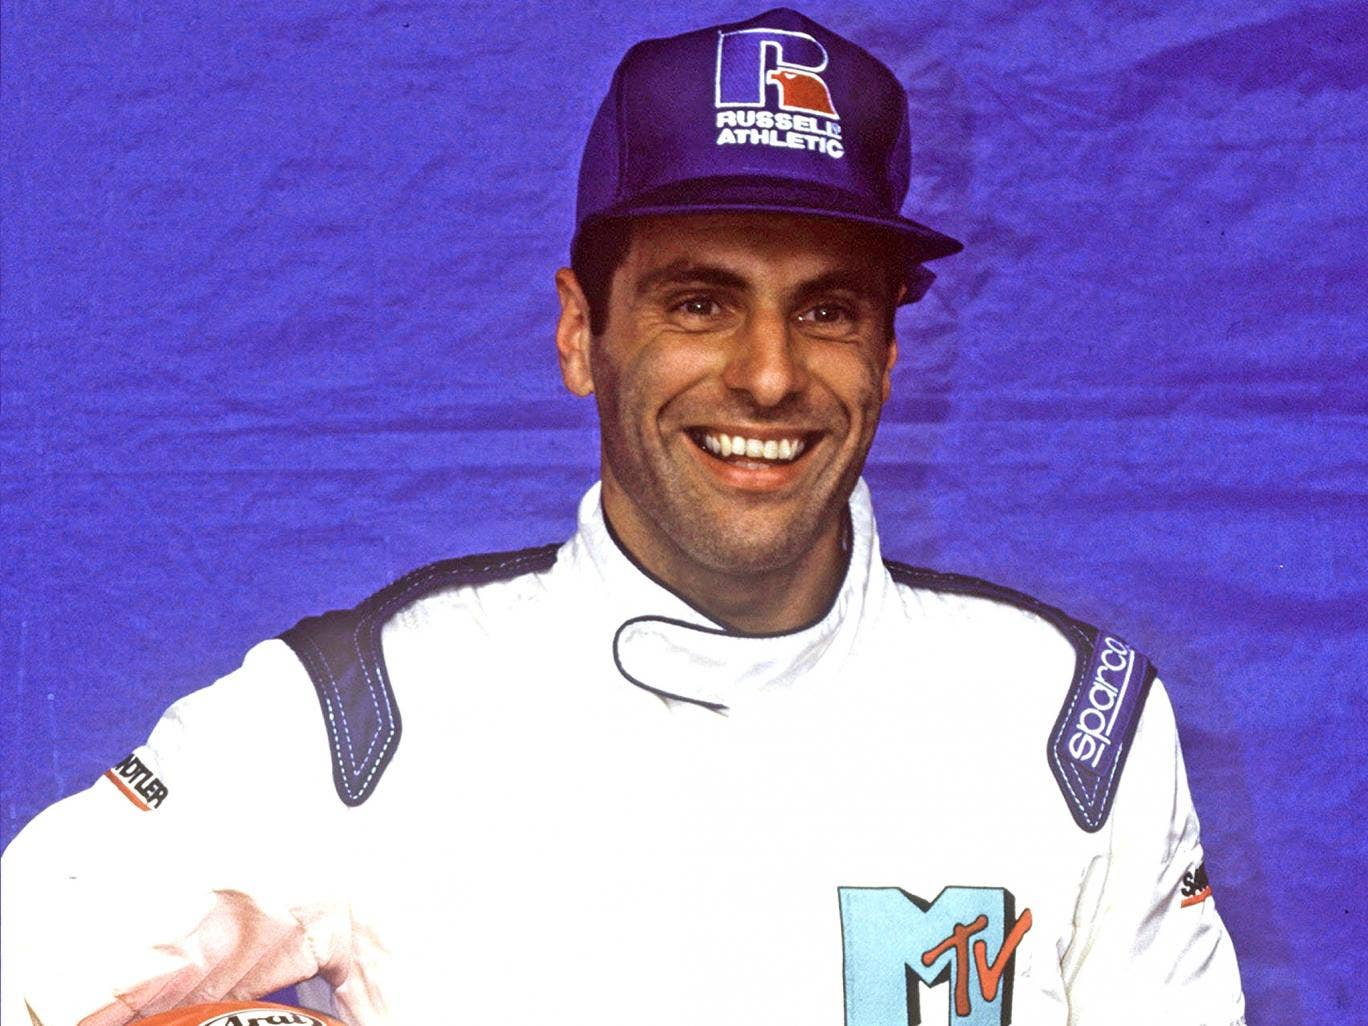 Roland Ratzenberger, two months before his death